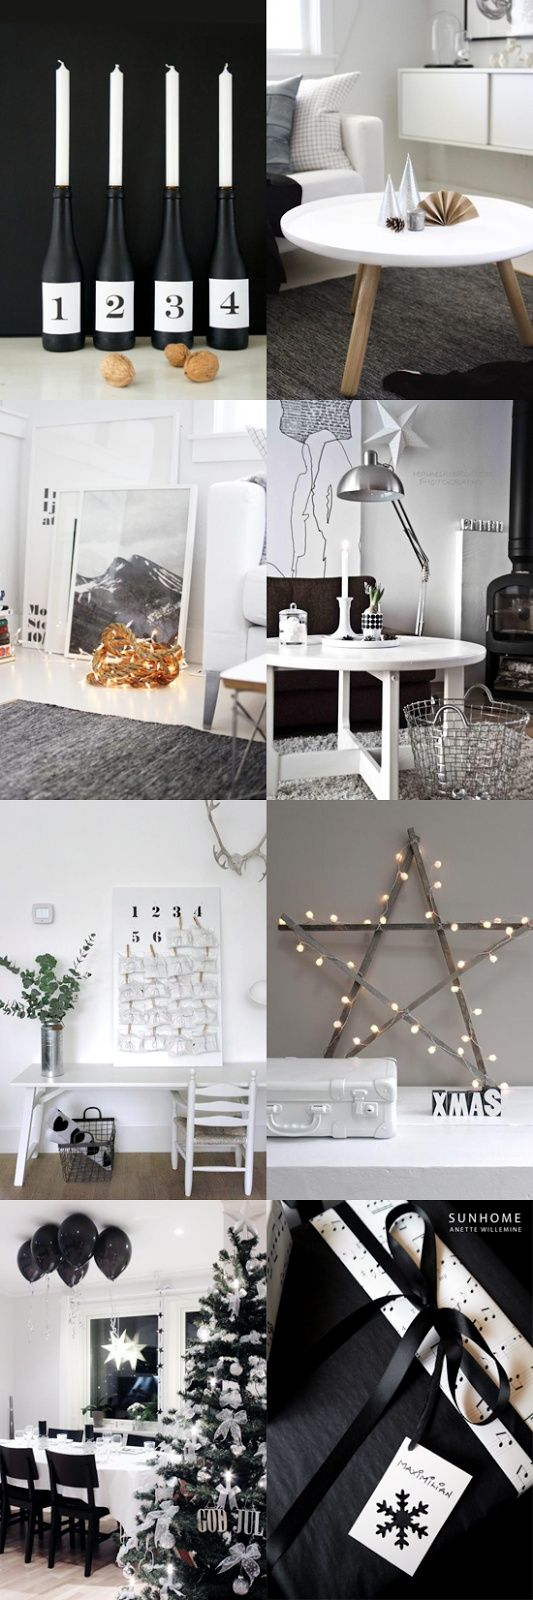 Black and white ideas